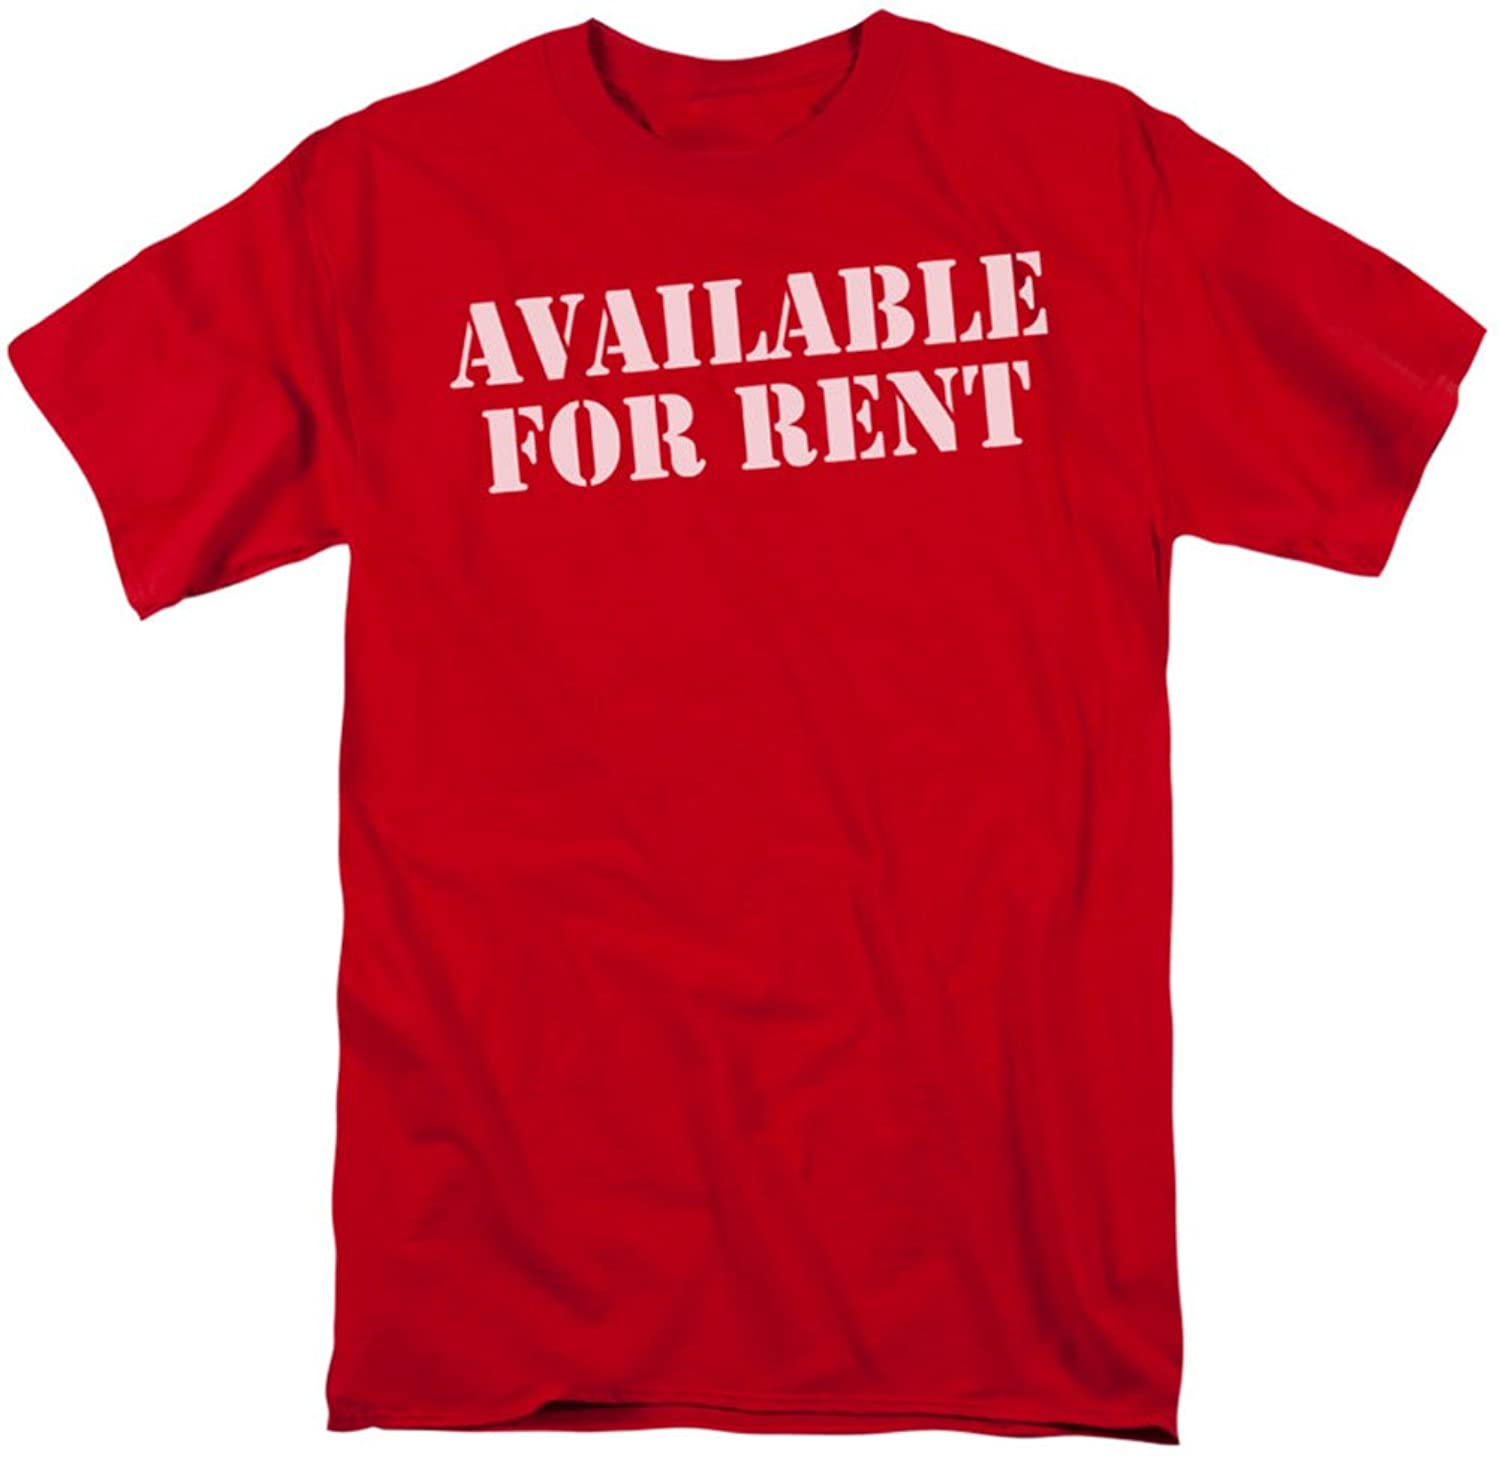 Funny Tees - Mens Available For Rent T-Shirt